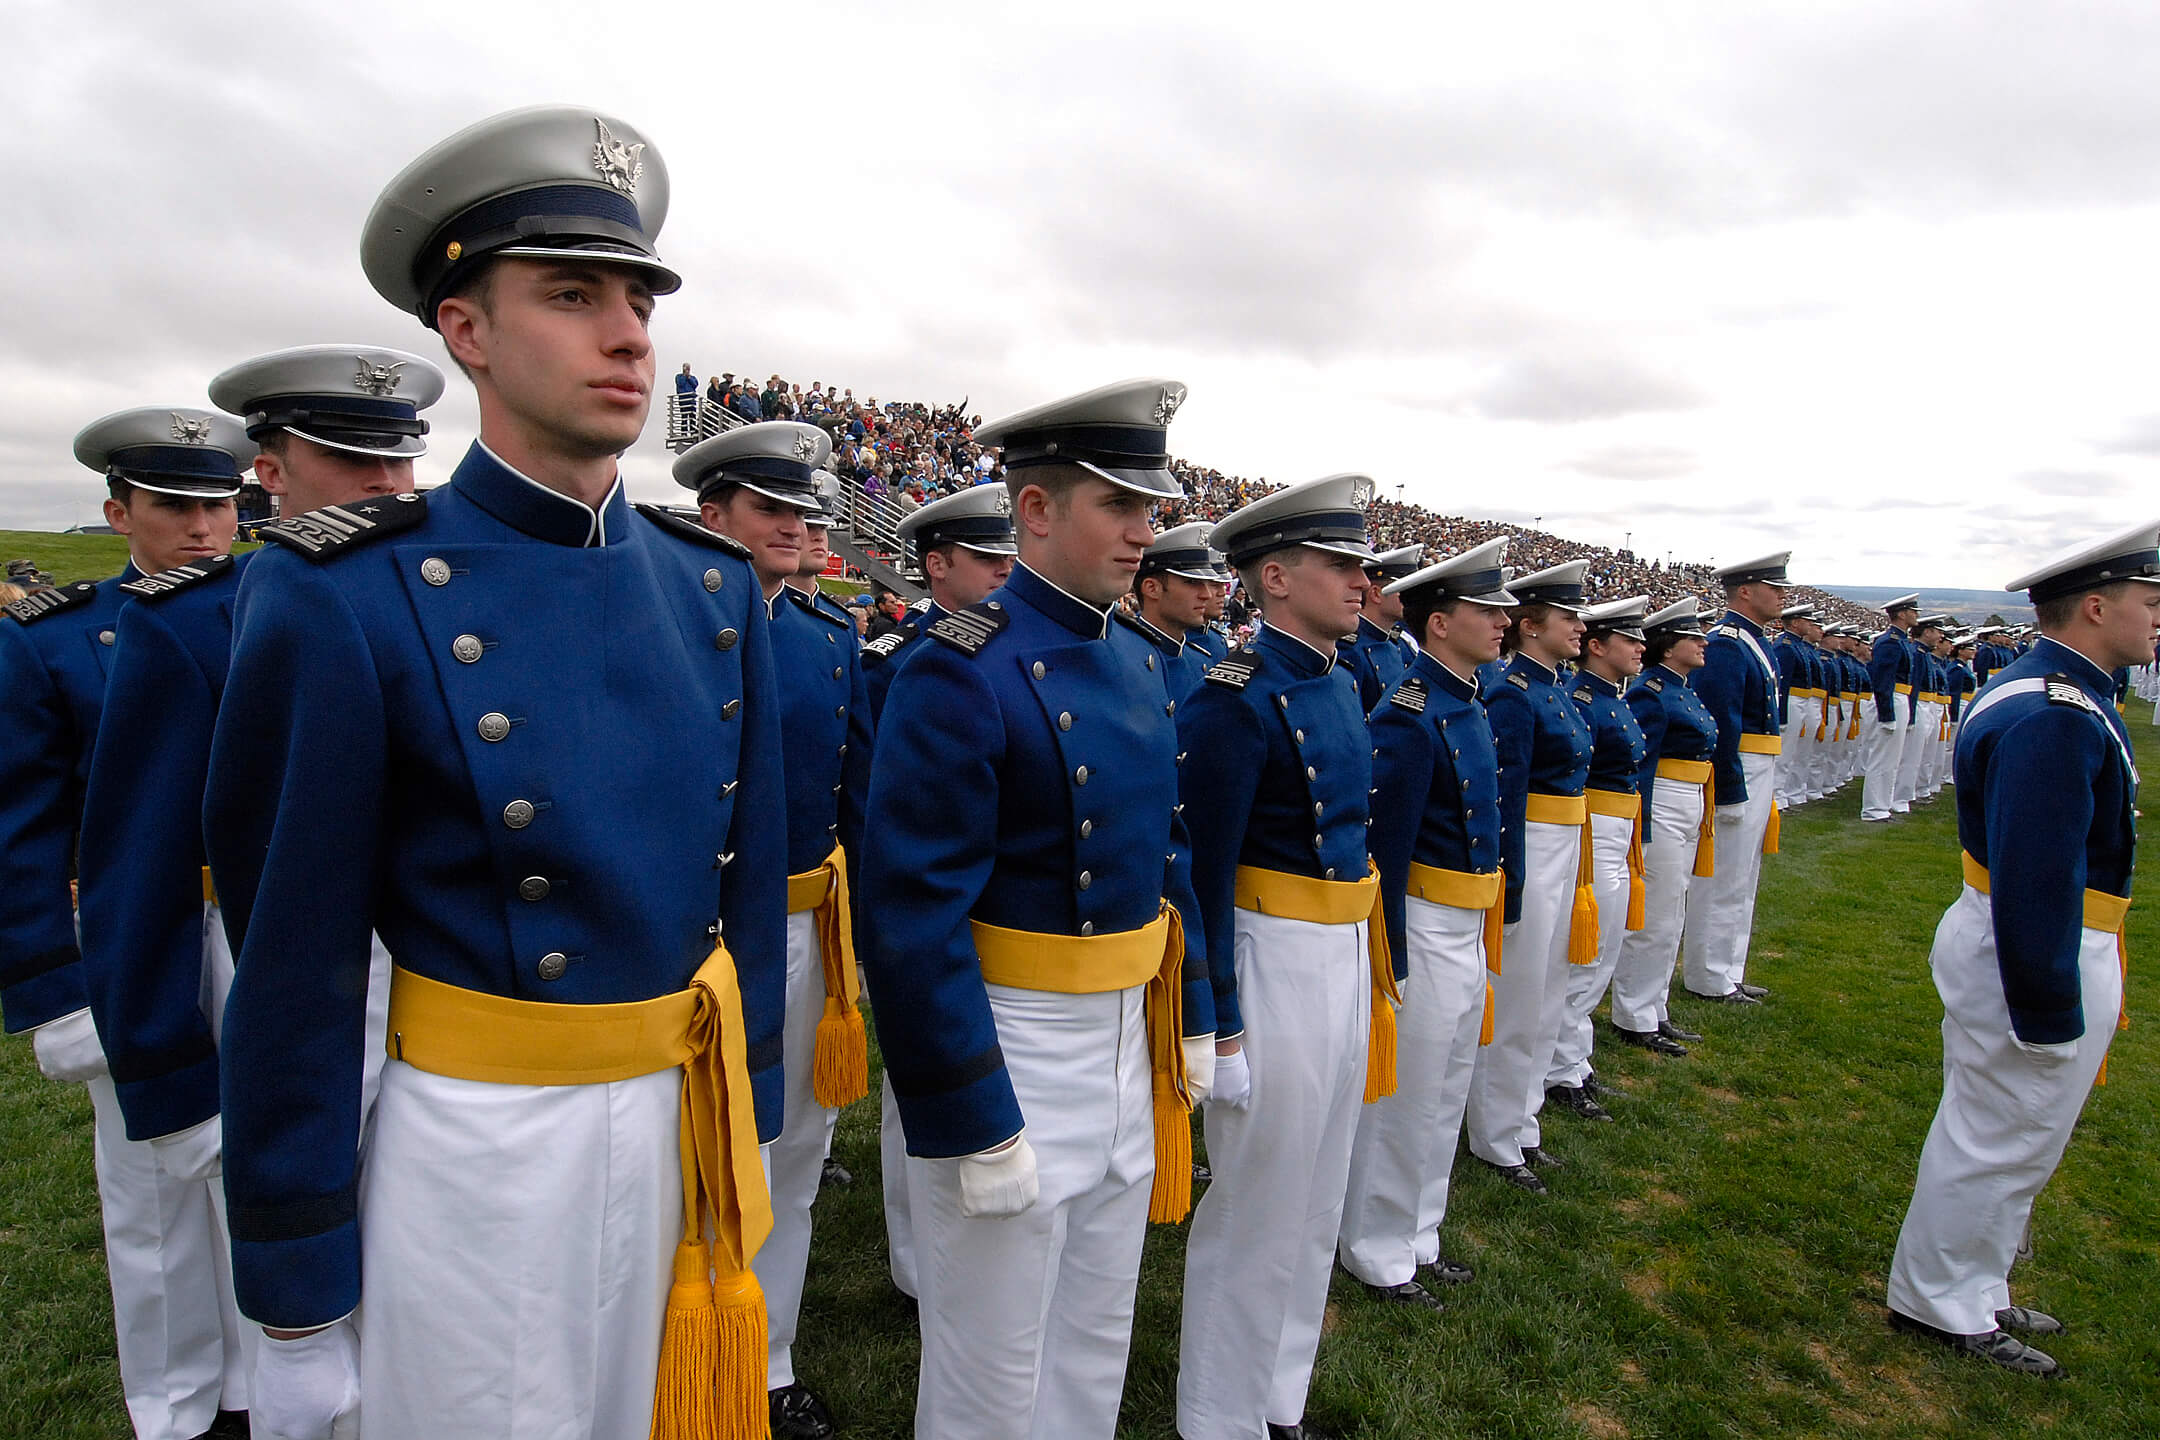 Air Force Academy to host Class of '19 graduation parade May 29